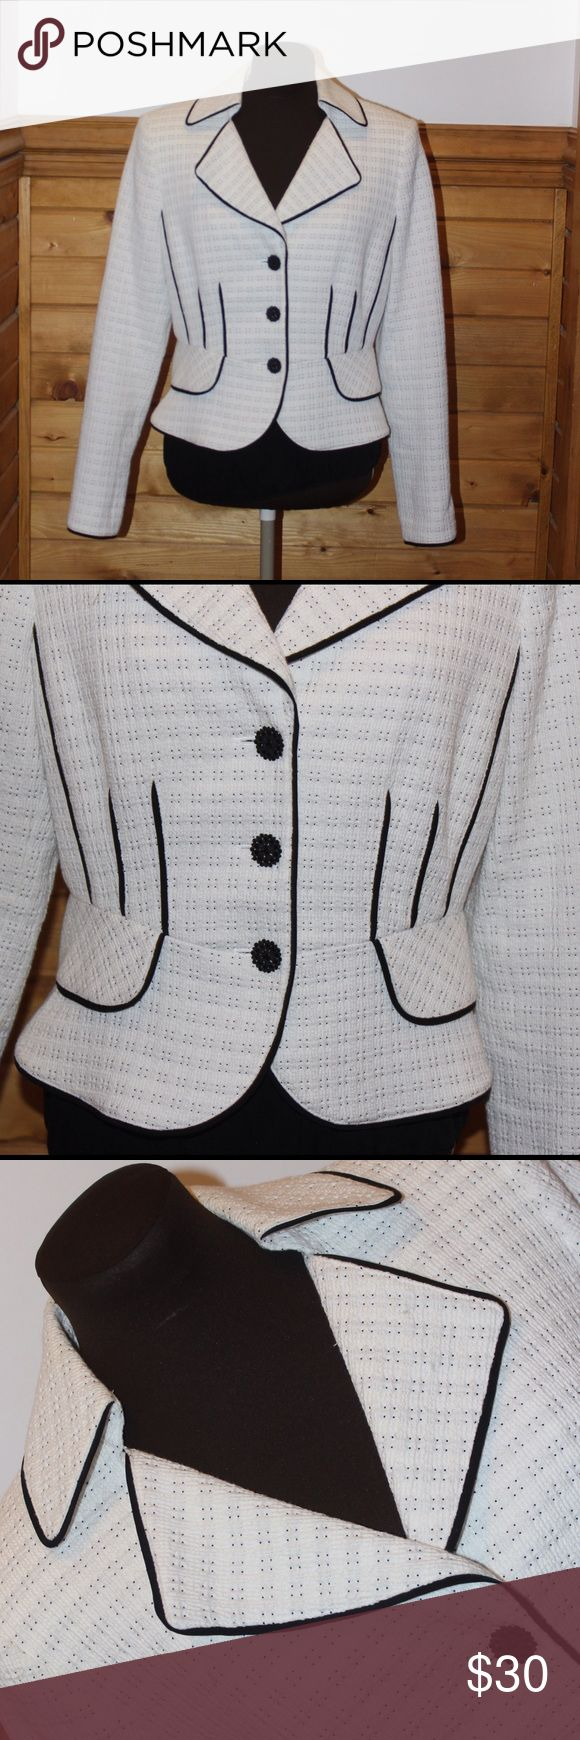 ✨ Kay Unger ✨ This Jacket is gorgeous!!! I would keep it, but I'm terrible with white- so I am afraid to wear it ! Jacket has 3 button down that are very decorative. Made to flatter your womanly figure. Is in GREAT condition. Kay Unger Jackets & Coats Blazers